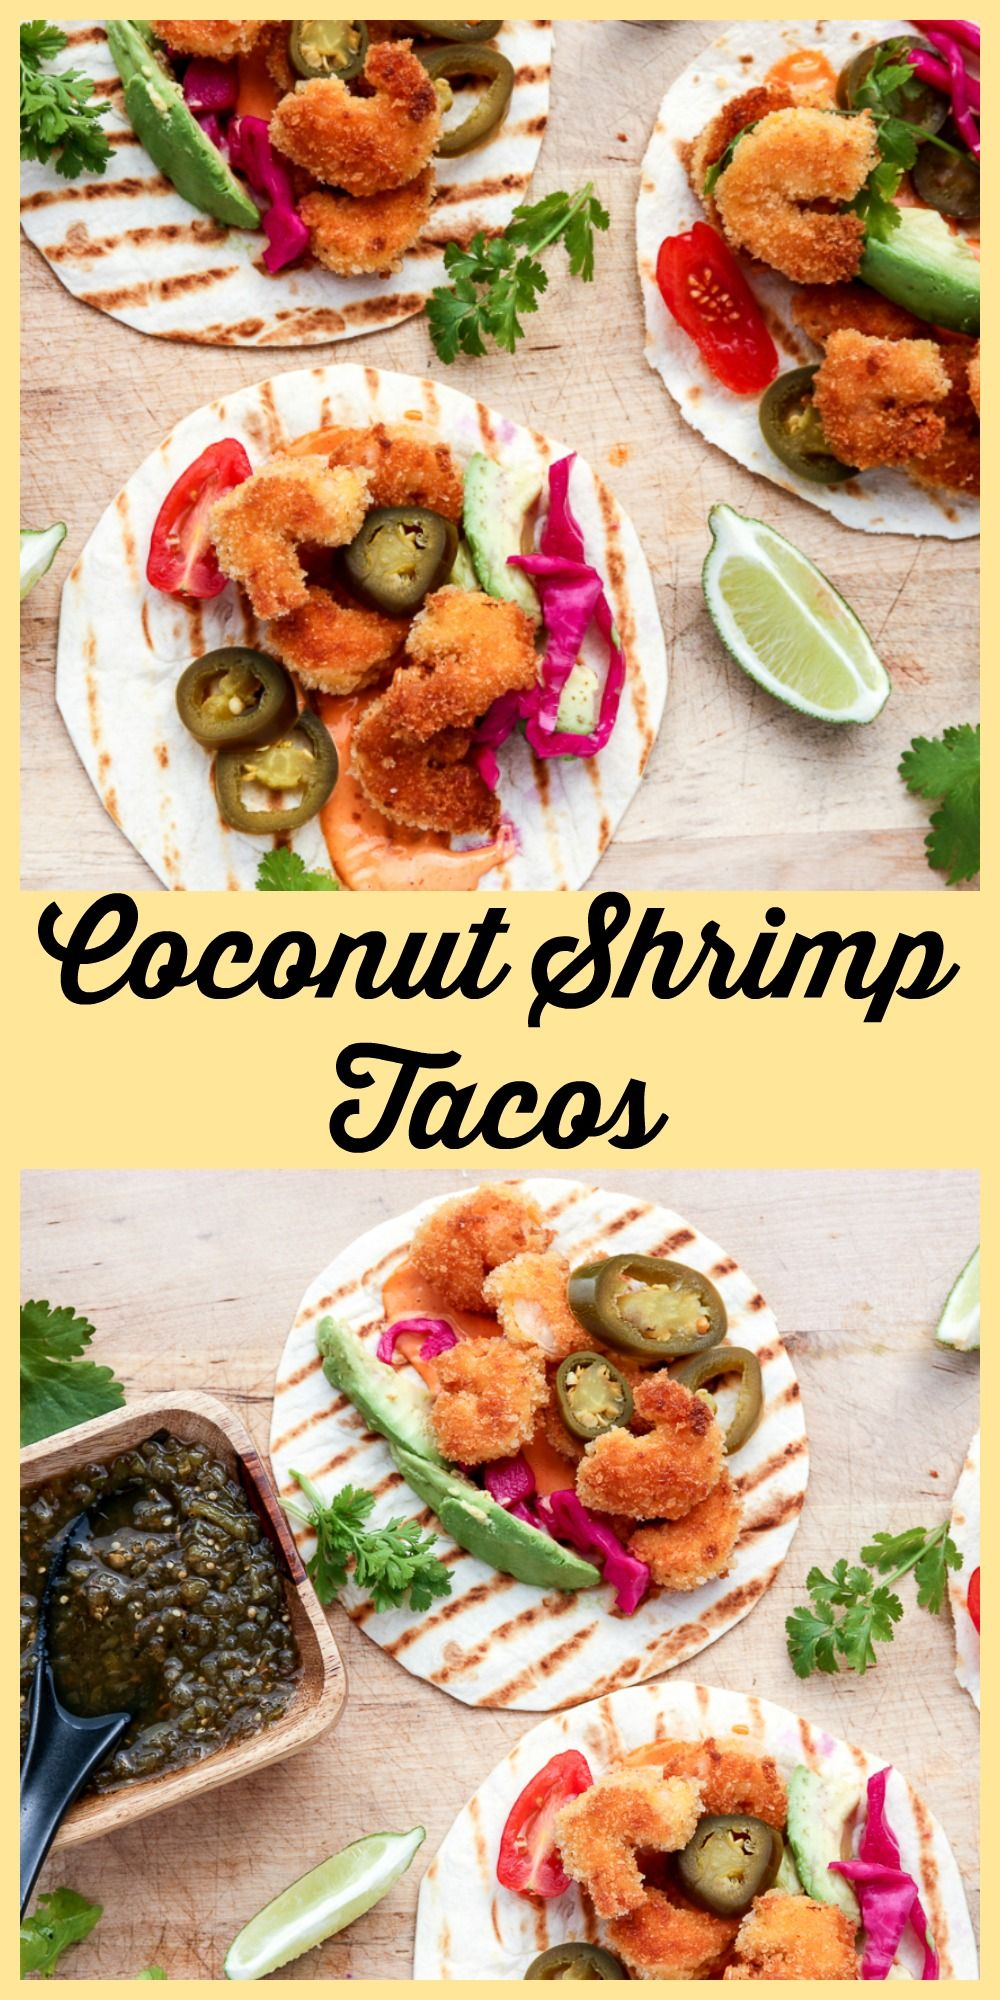 Golden Crispy Coconut Shrimp are delicious on Tacos.